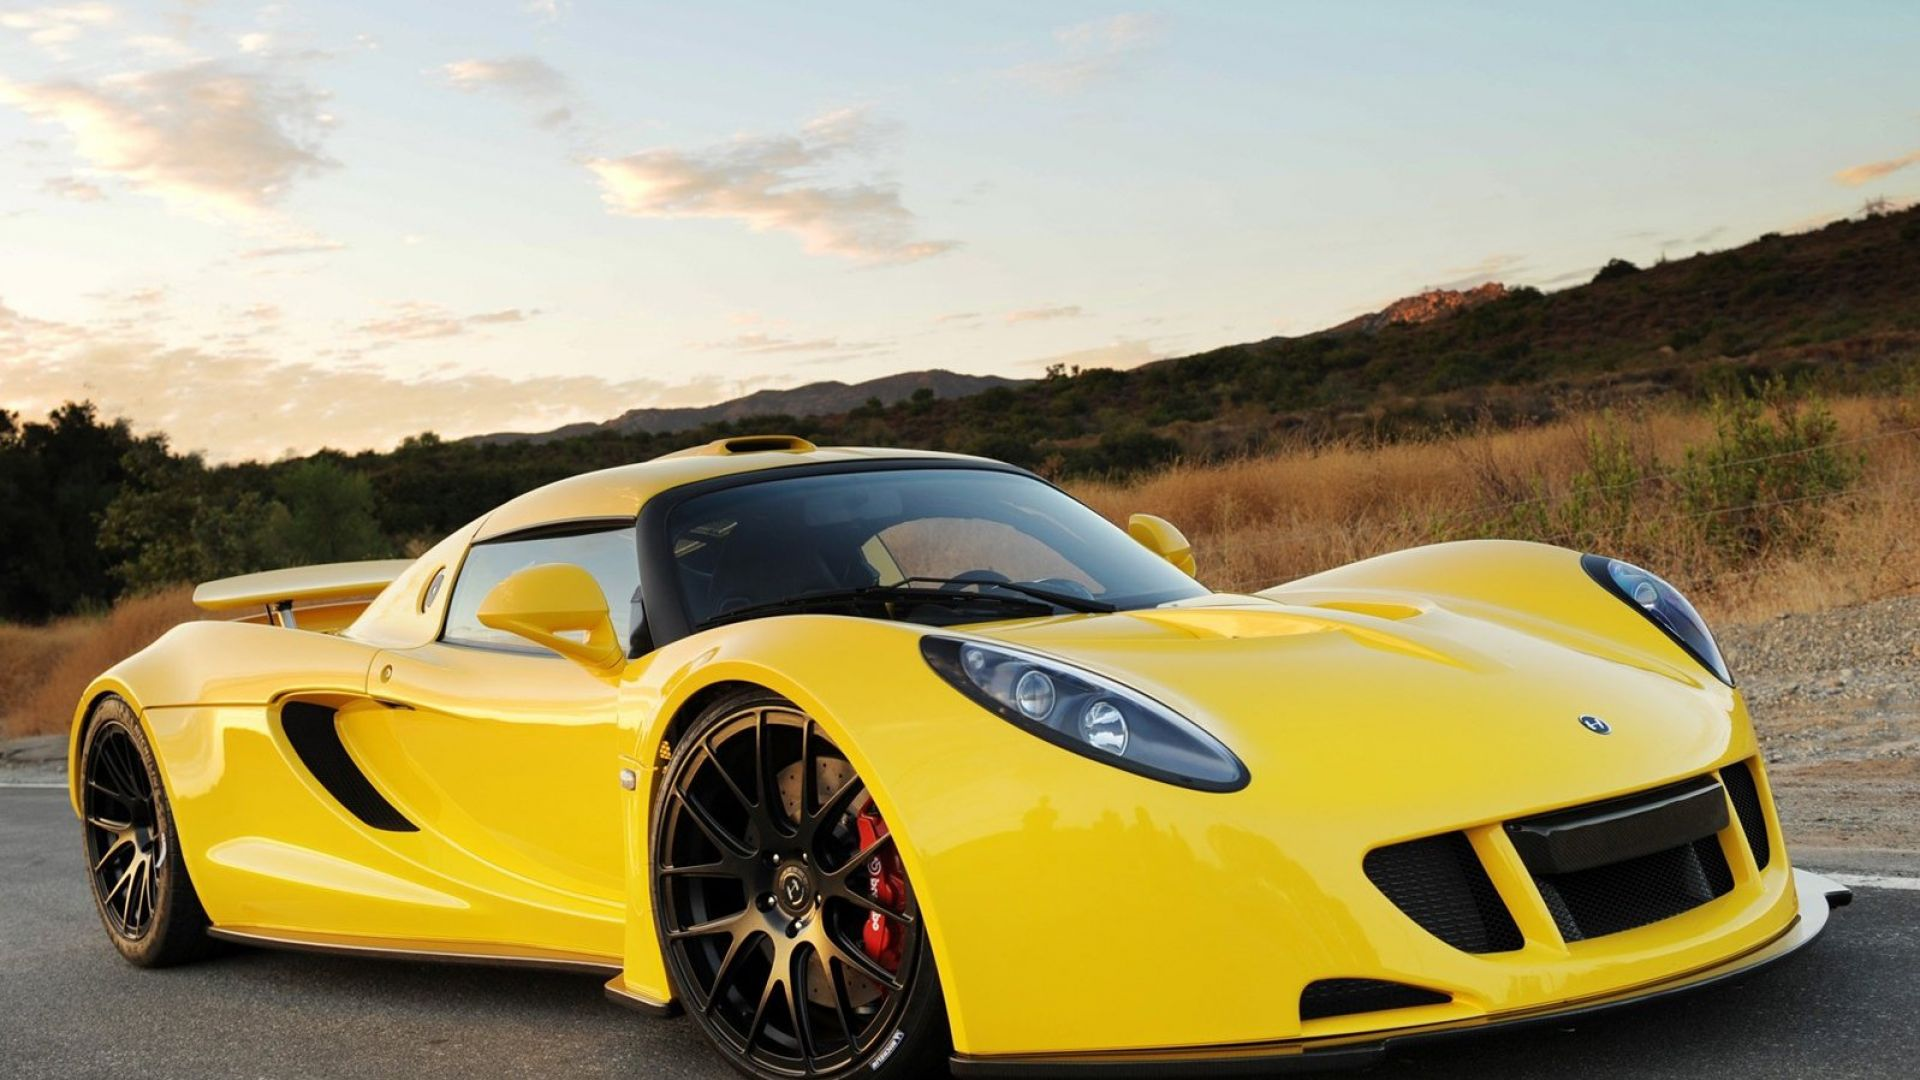 video factory hennessey venom gt da 0 a 300 km h in 13 63 secondi motorbox. Black Bedroom Furniture Sets. Home Design Ideas